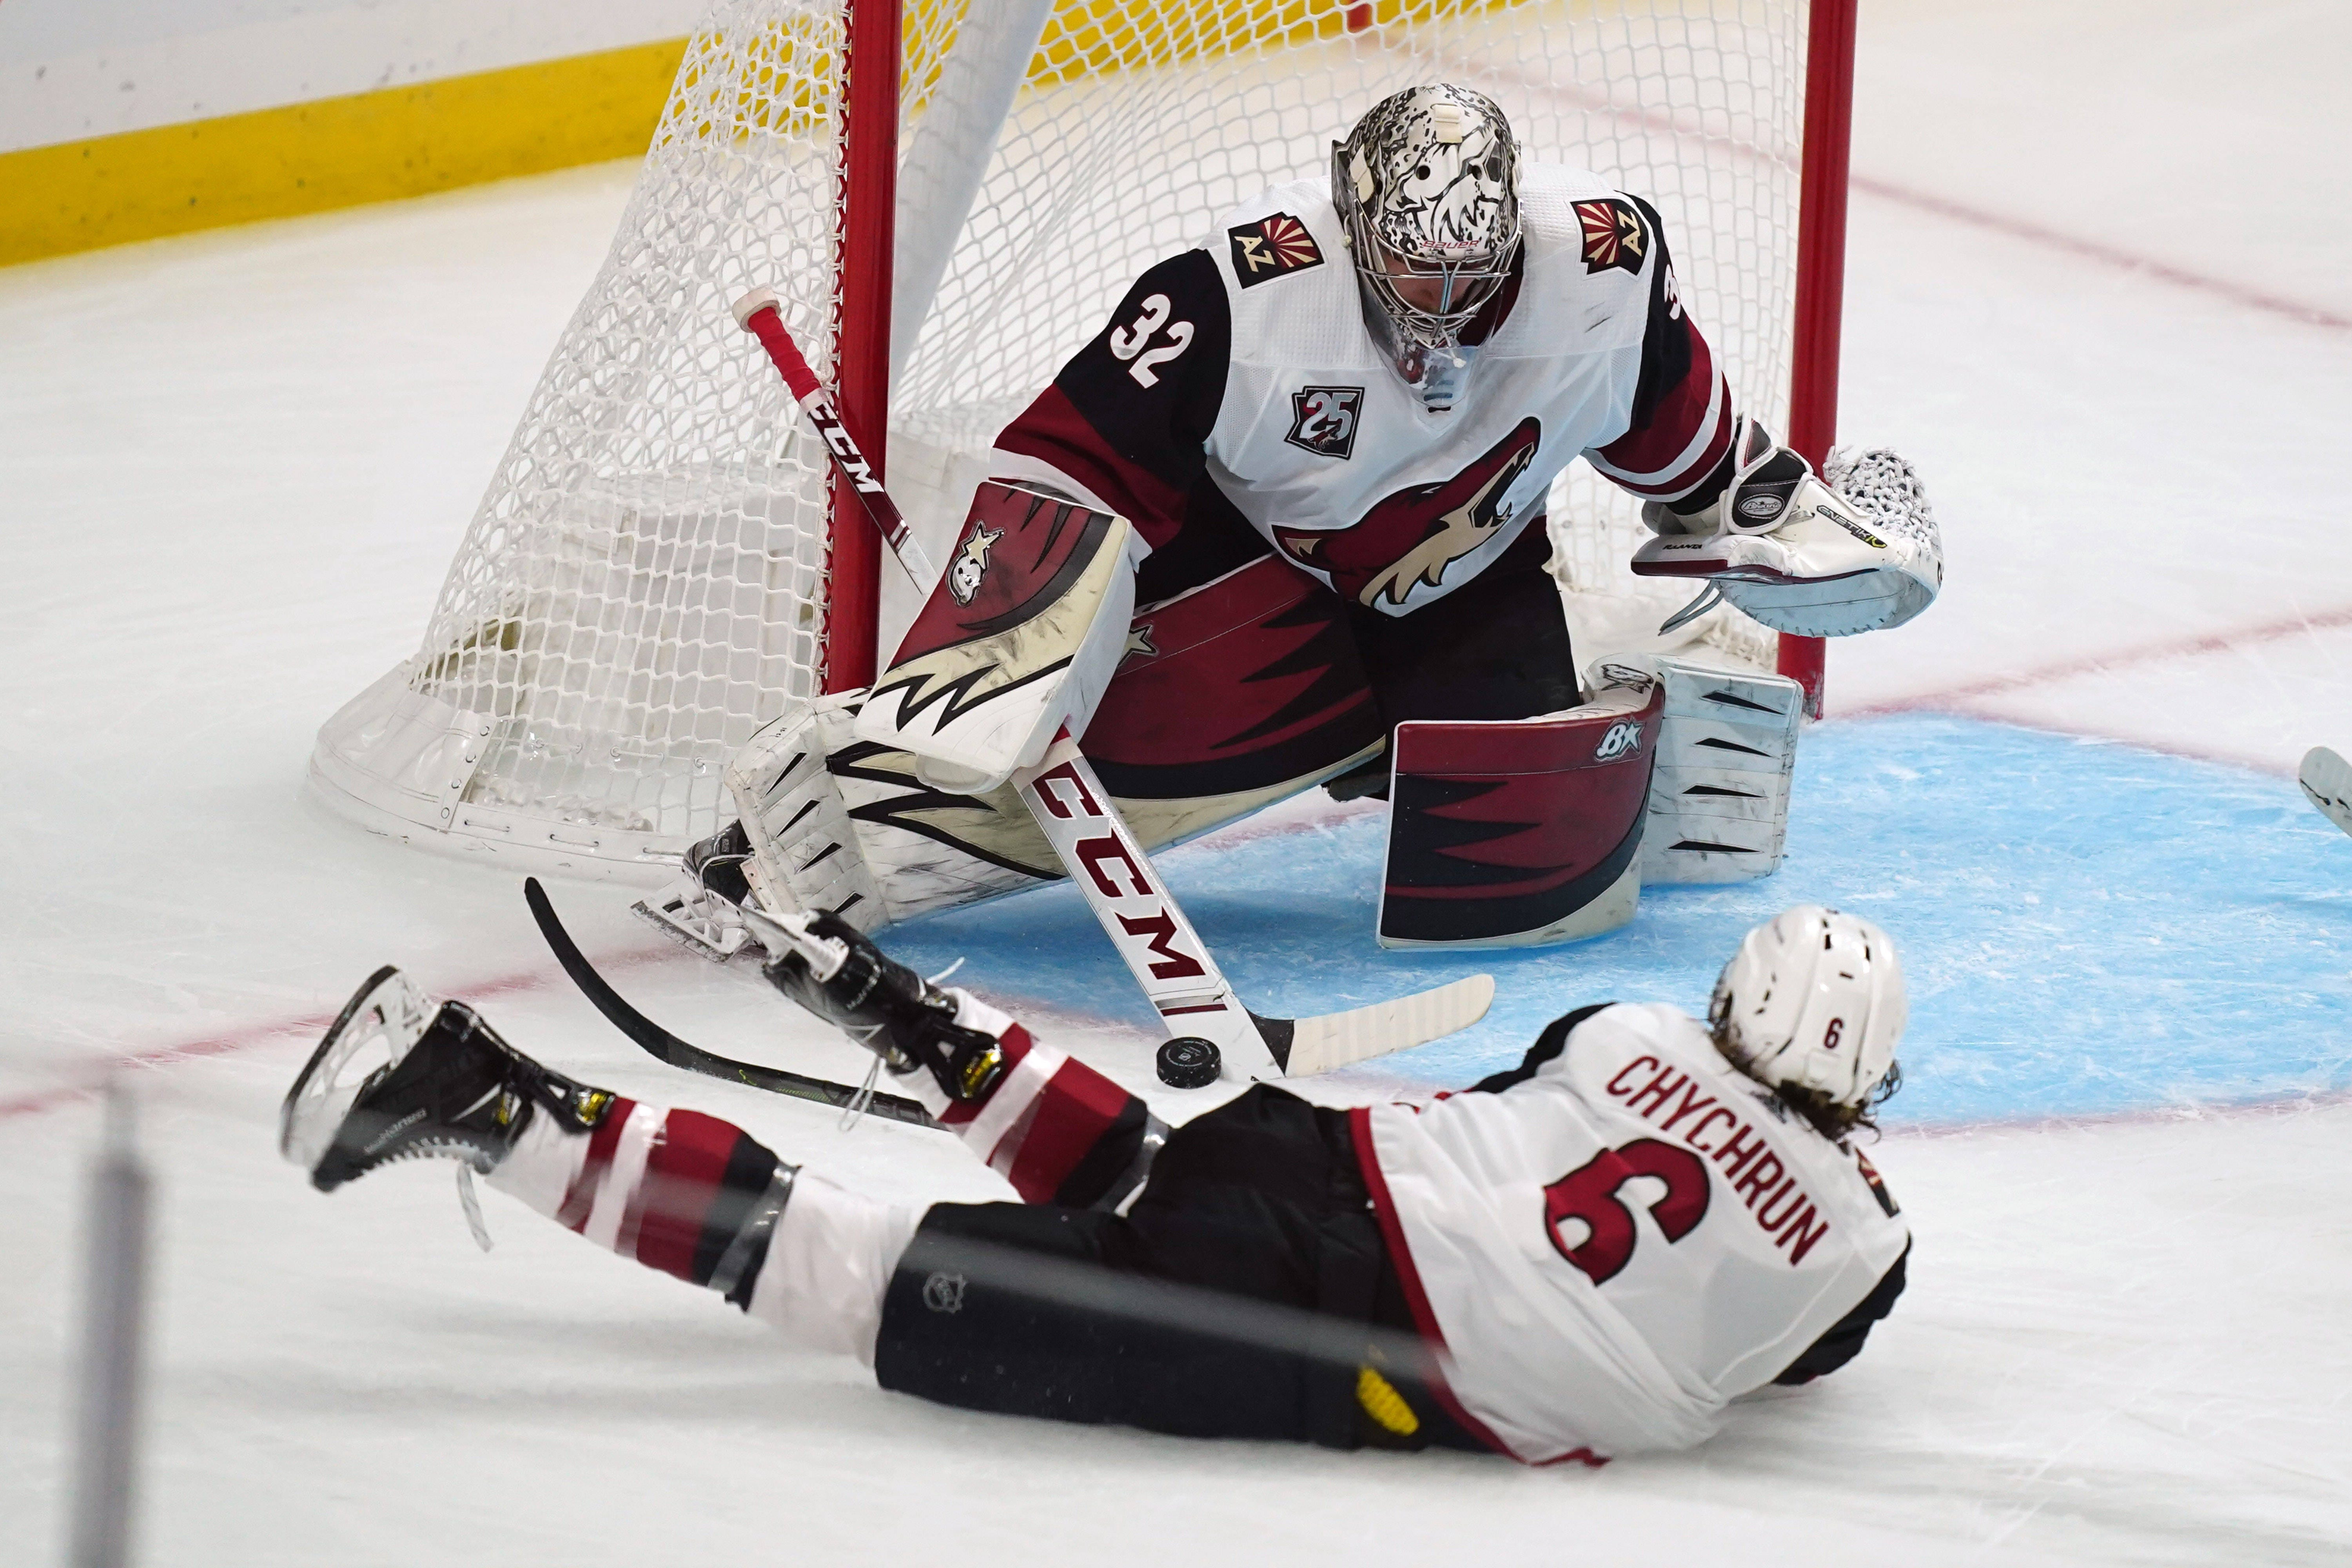 Coyotes goalie Antti Raanta, on his thoughts after improving to 6-0-1 vs. the Los Angeles Kings